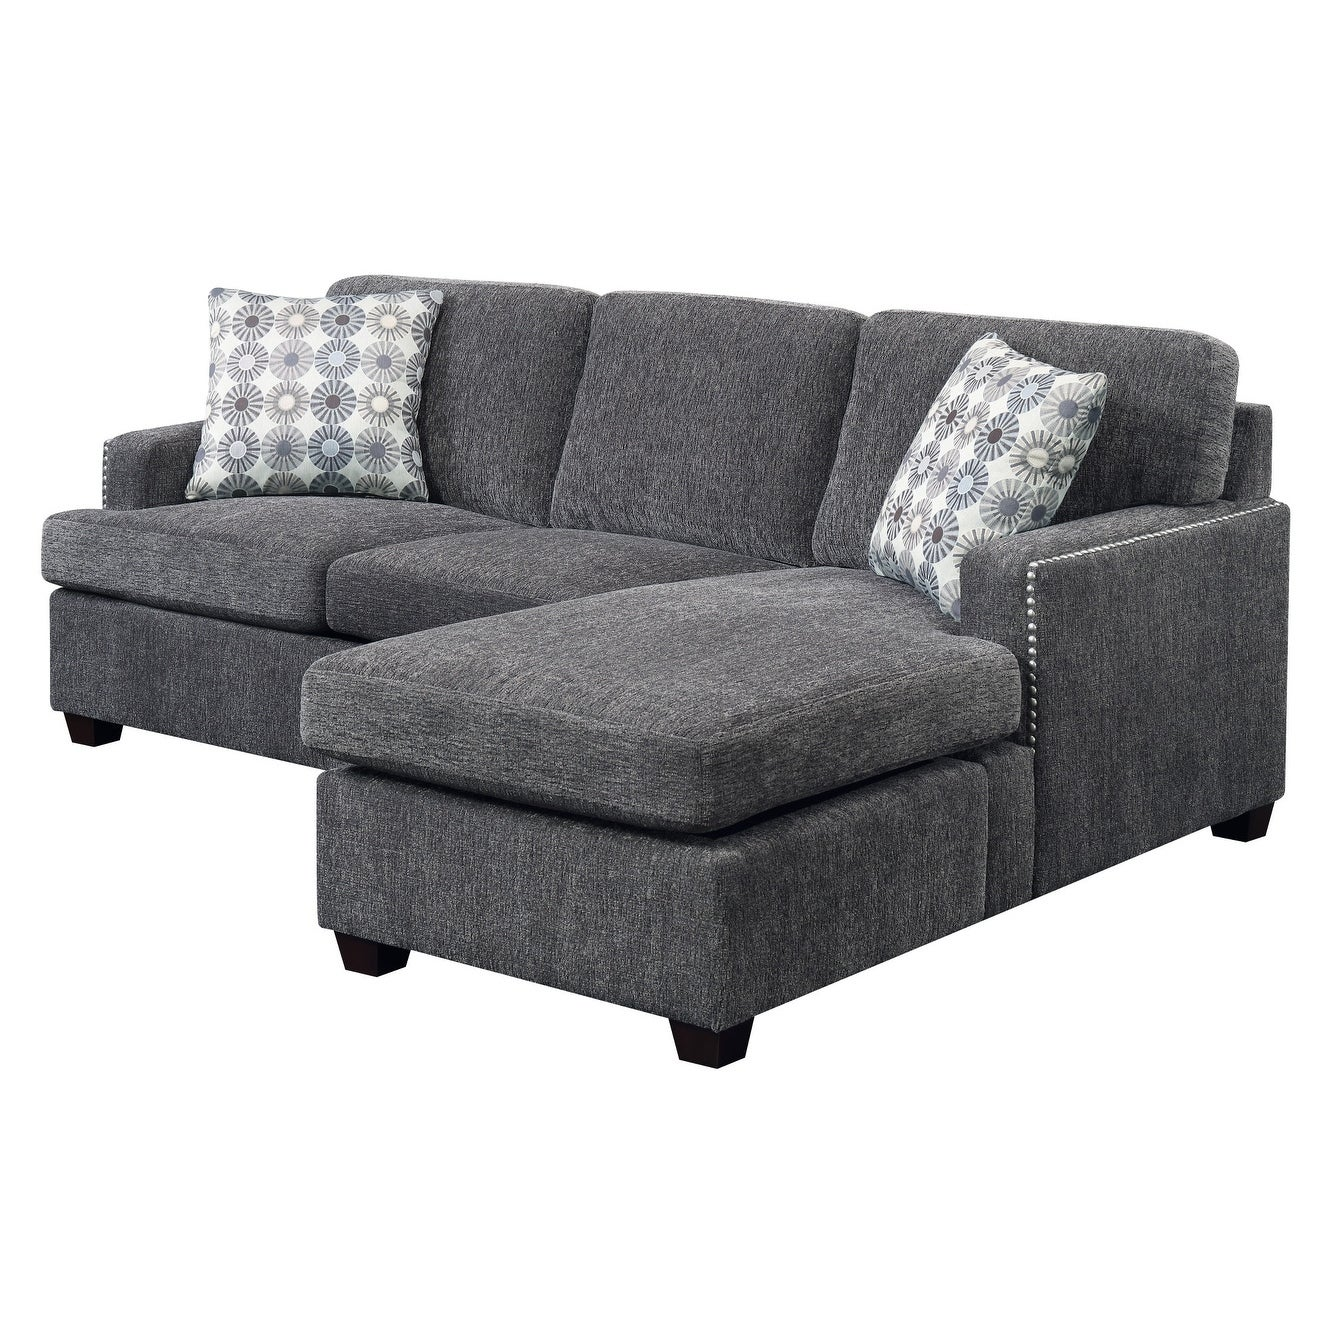 Shop emerald home siesta gray ink full sleeper chofa with pillows reversible chaise and 4 gel mattress free shipping today overstock com 18045843